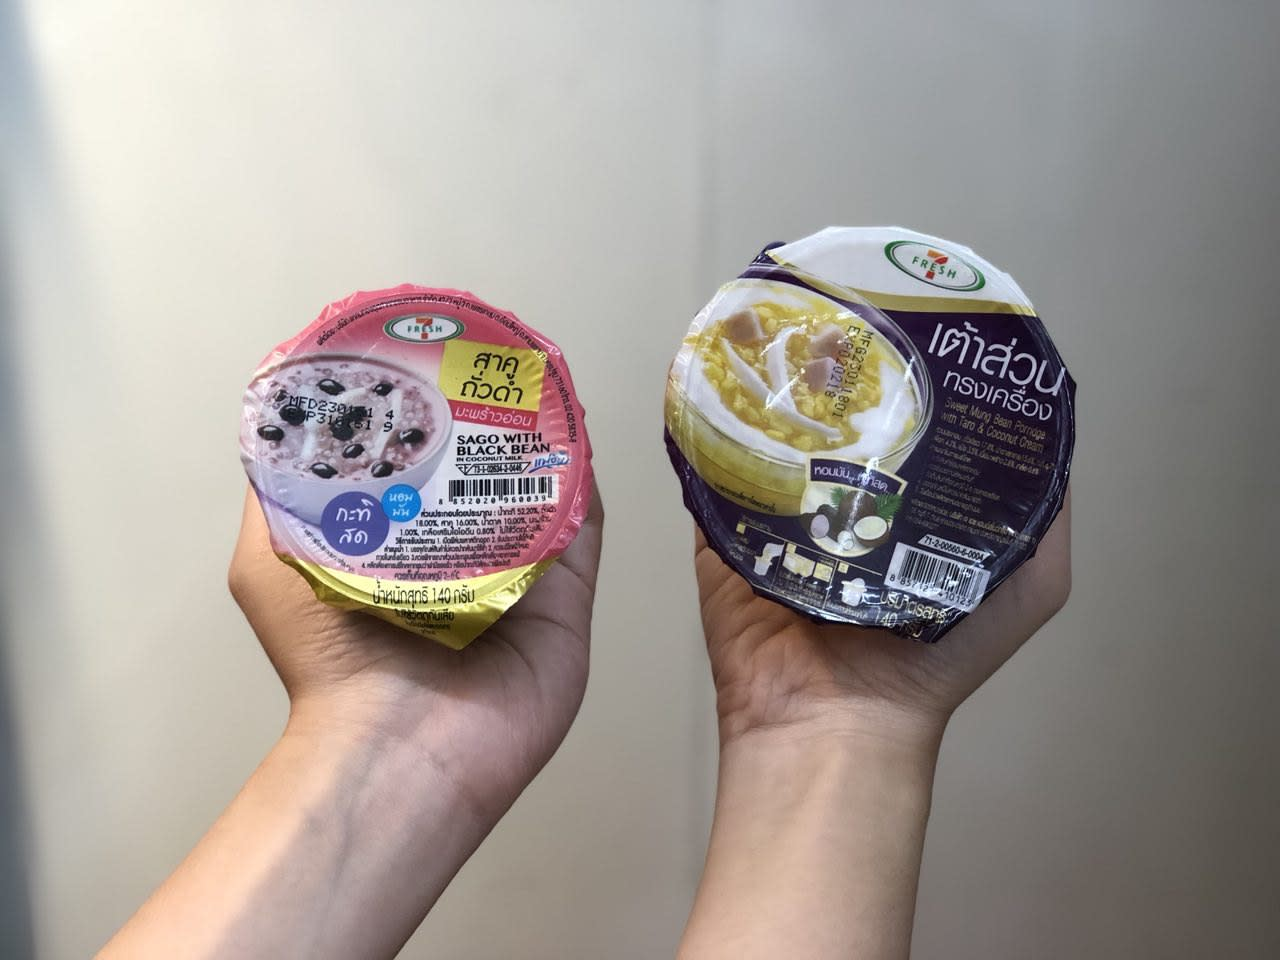 7-11 bangkok rice pudding